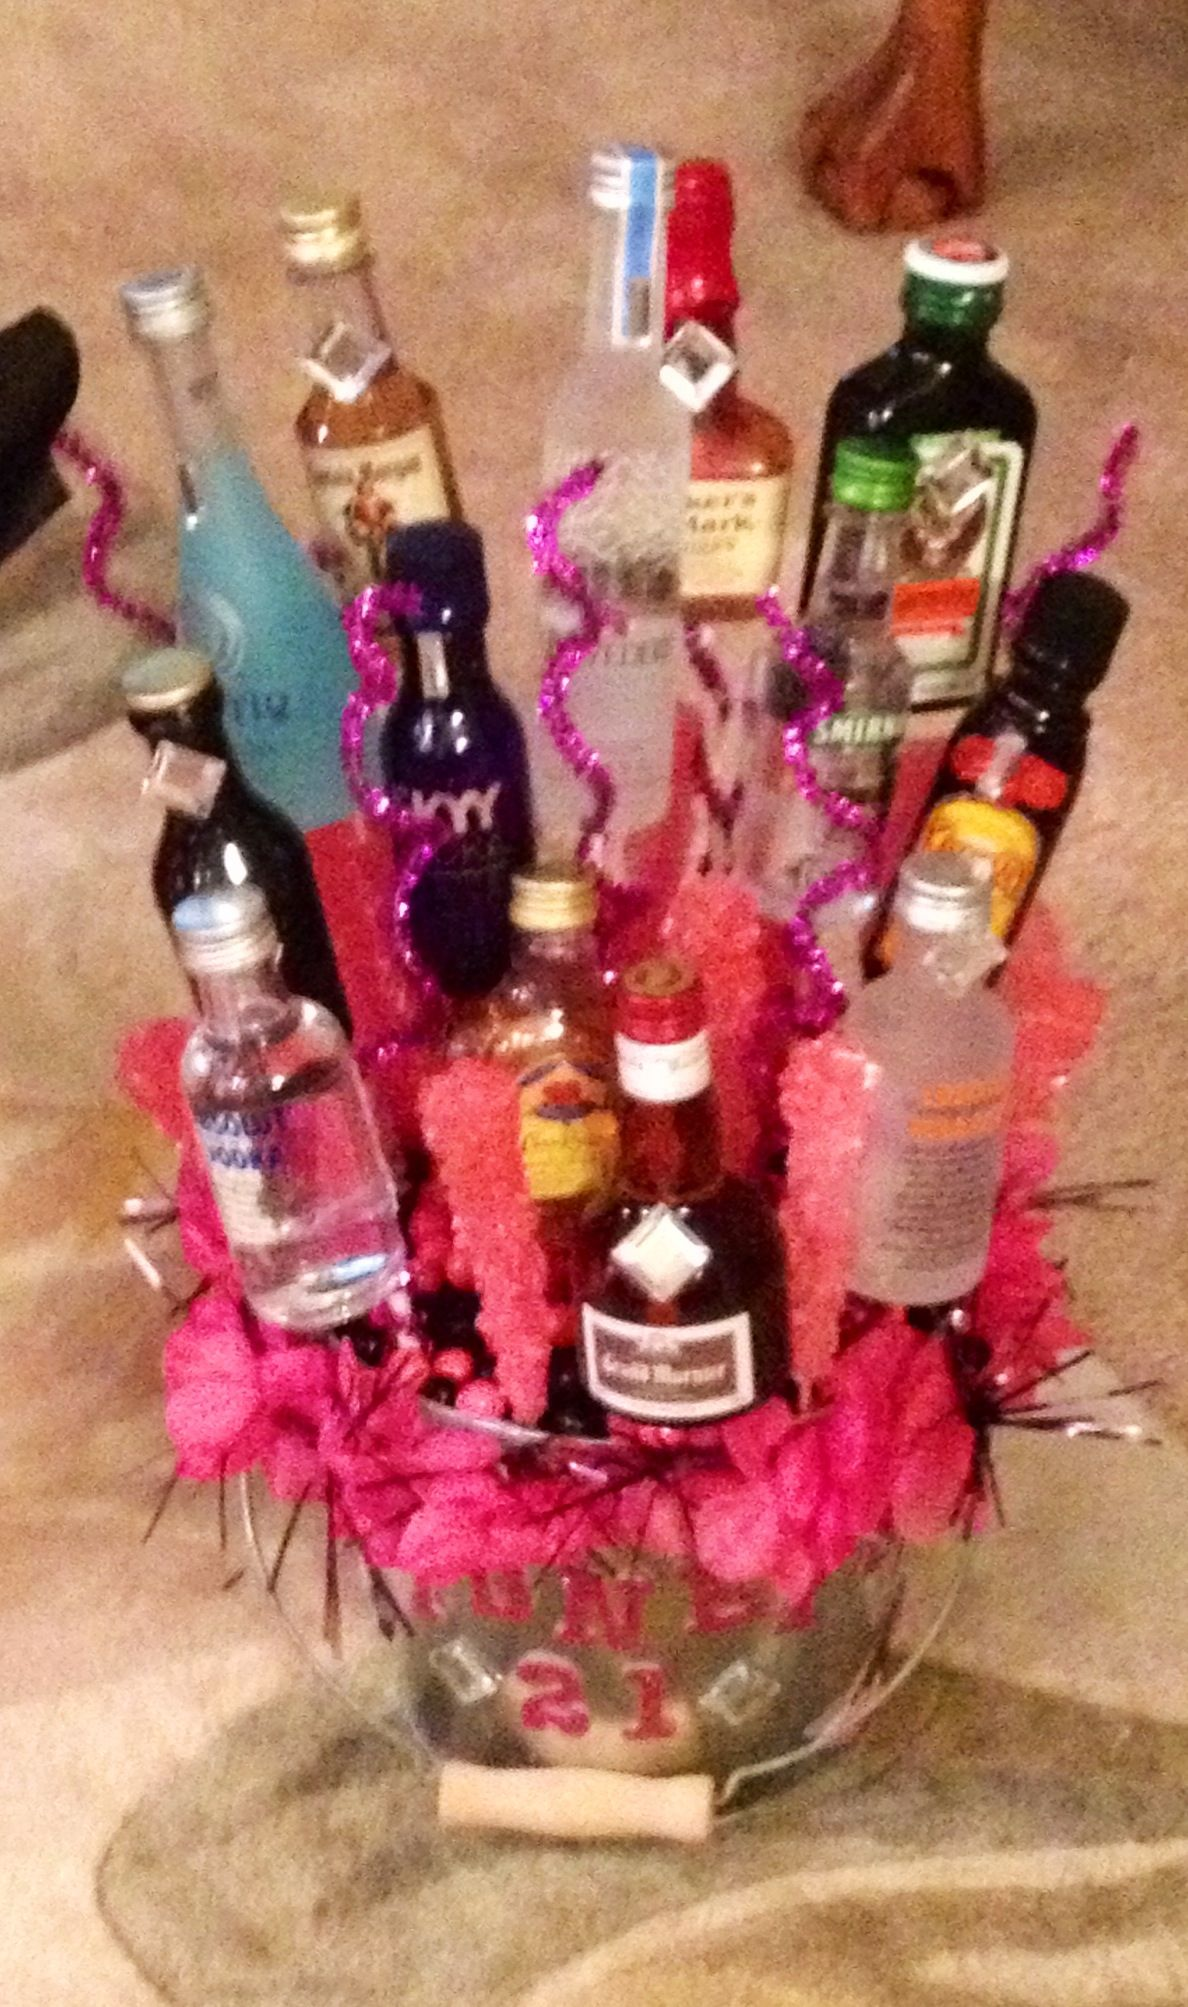 Made An Edible Alcohol Basket For My Dear Friend Her 21st Birthday